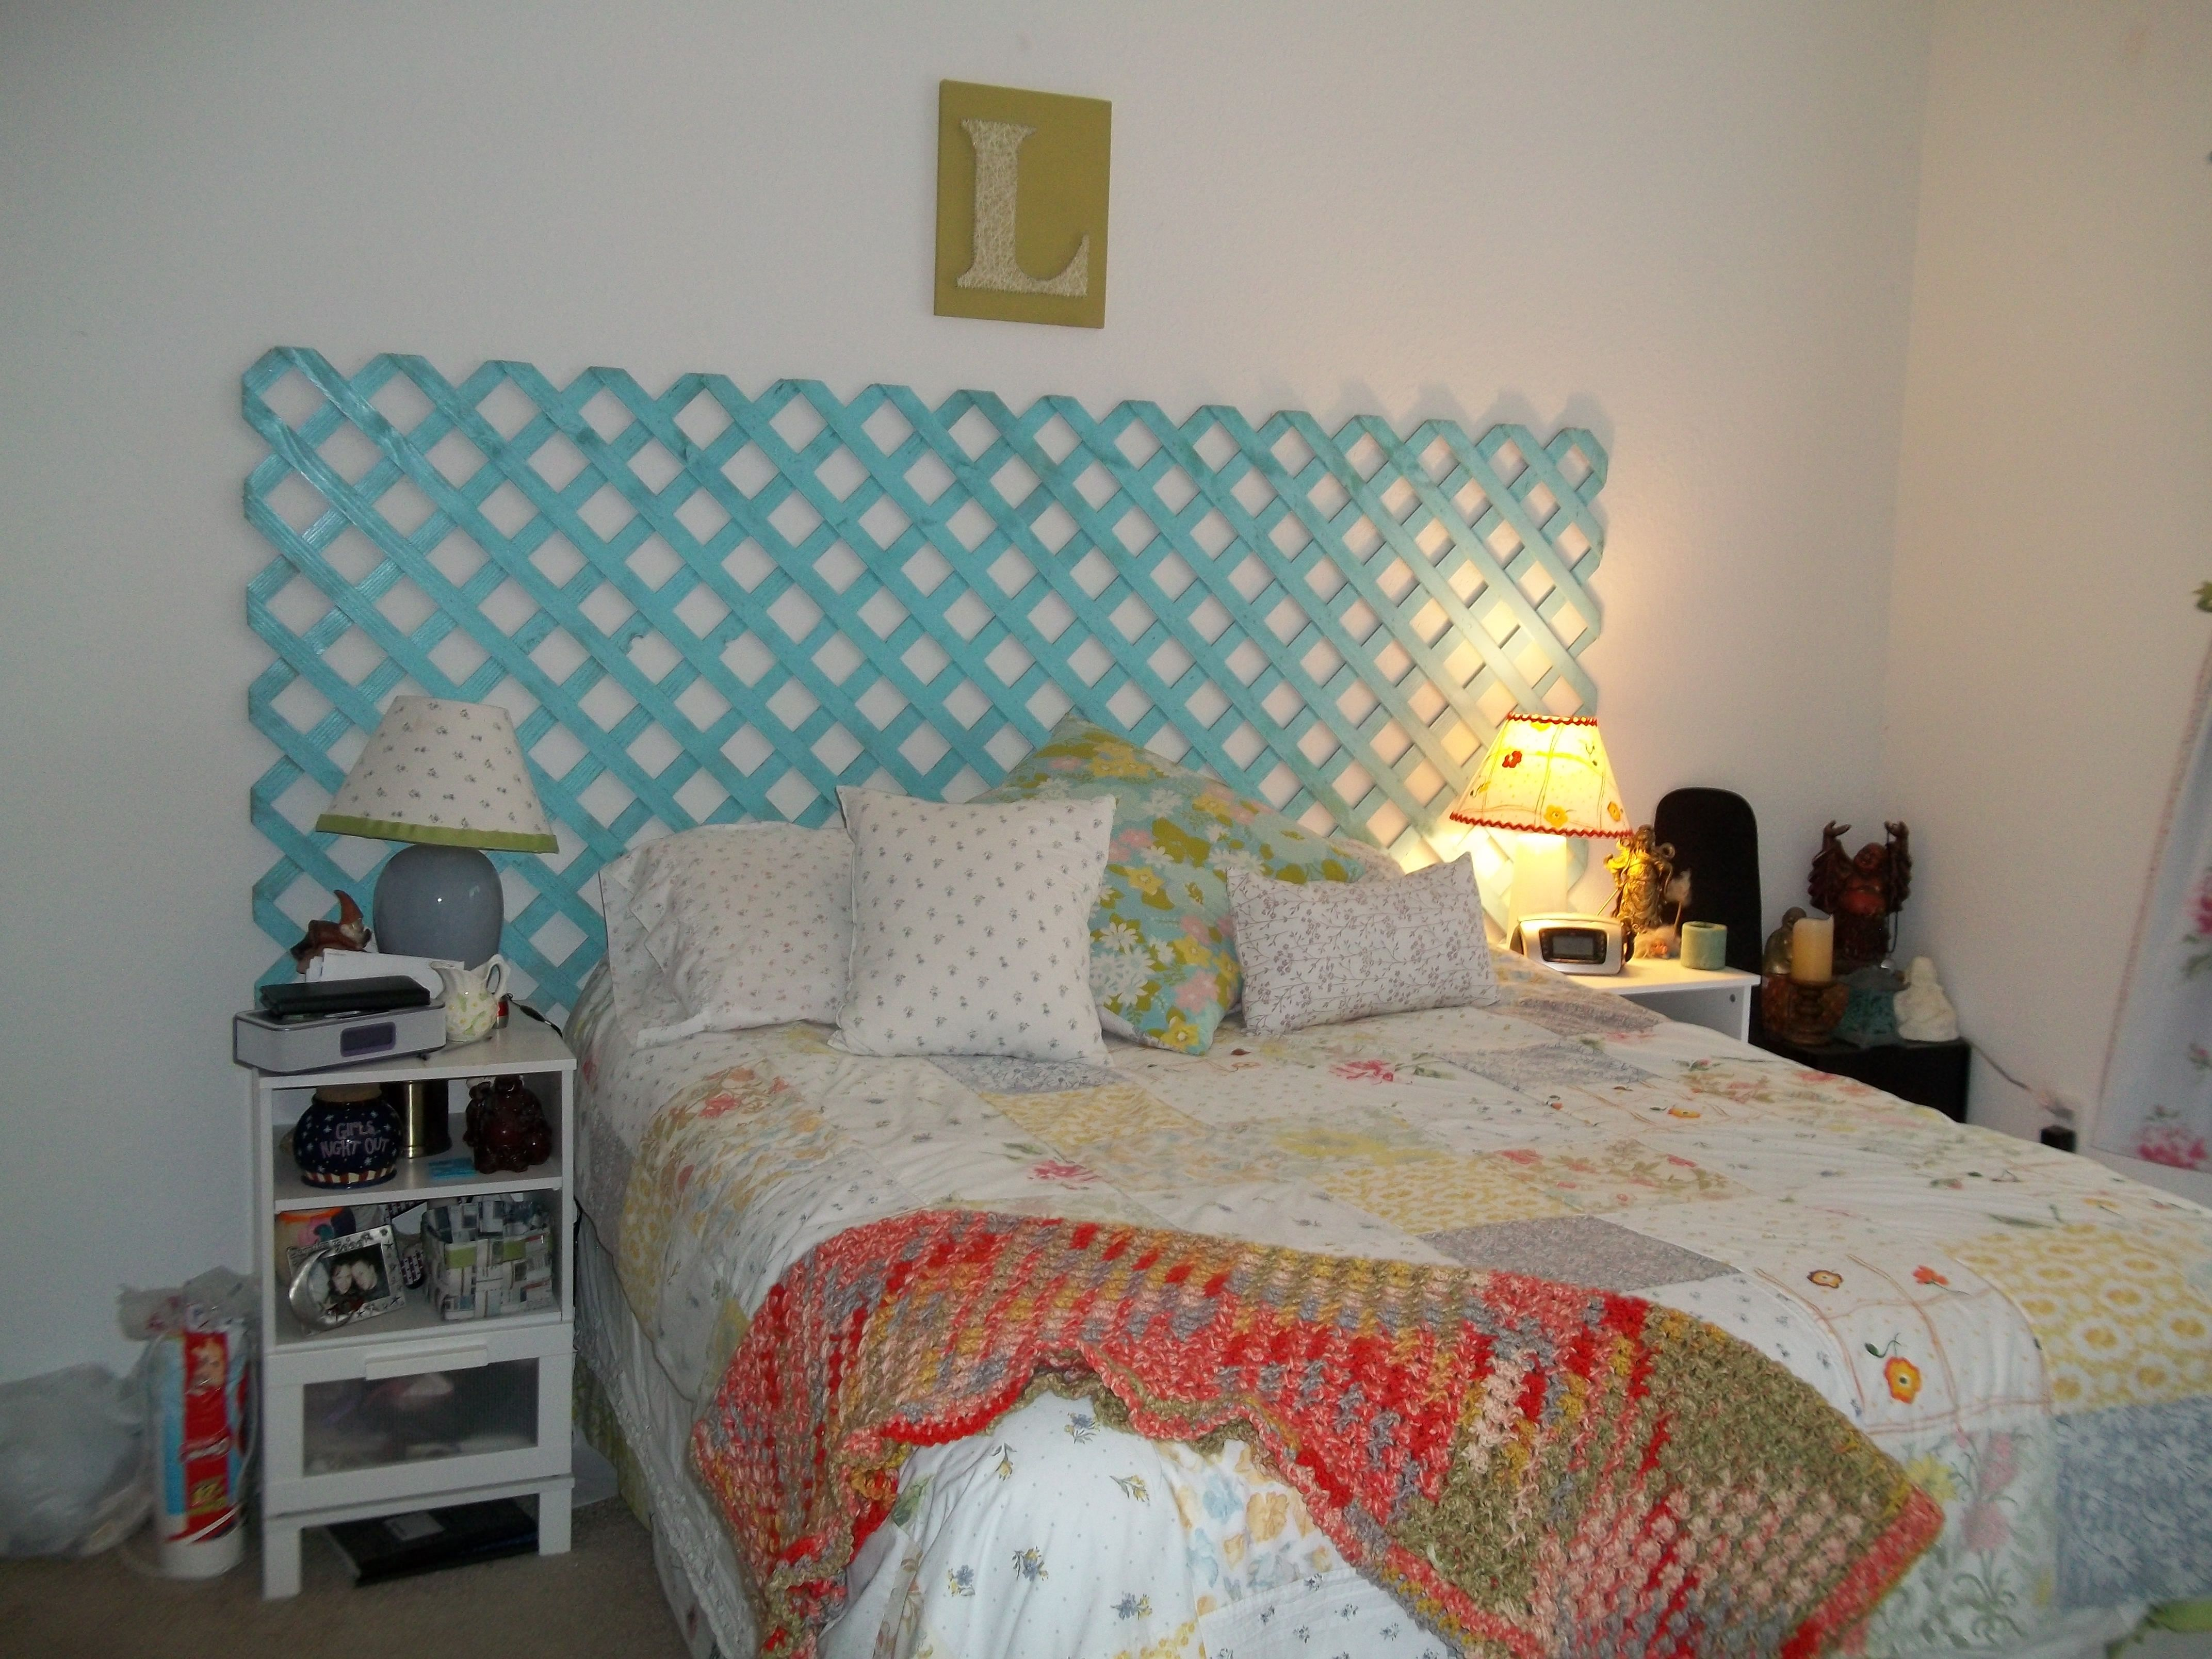 together water charmful bedroom headboards state twin for wells also cushty wood and traditional adults over decor with in girls stairs beds full headboard wall ga teenage bunk kids as